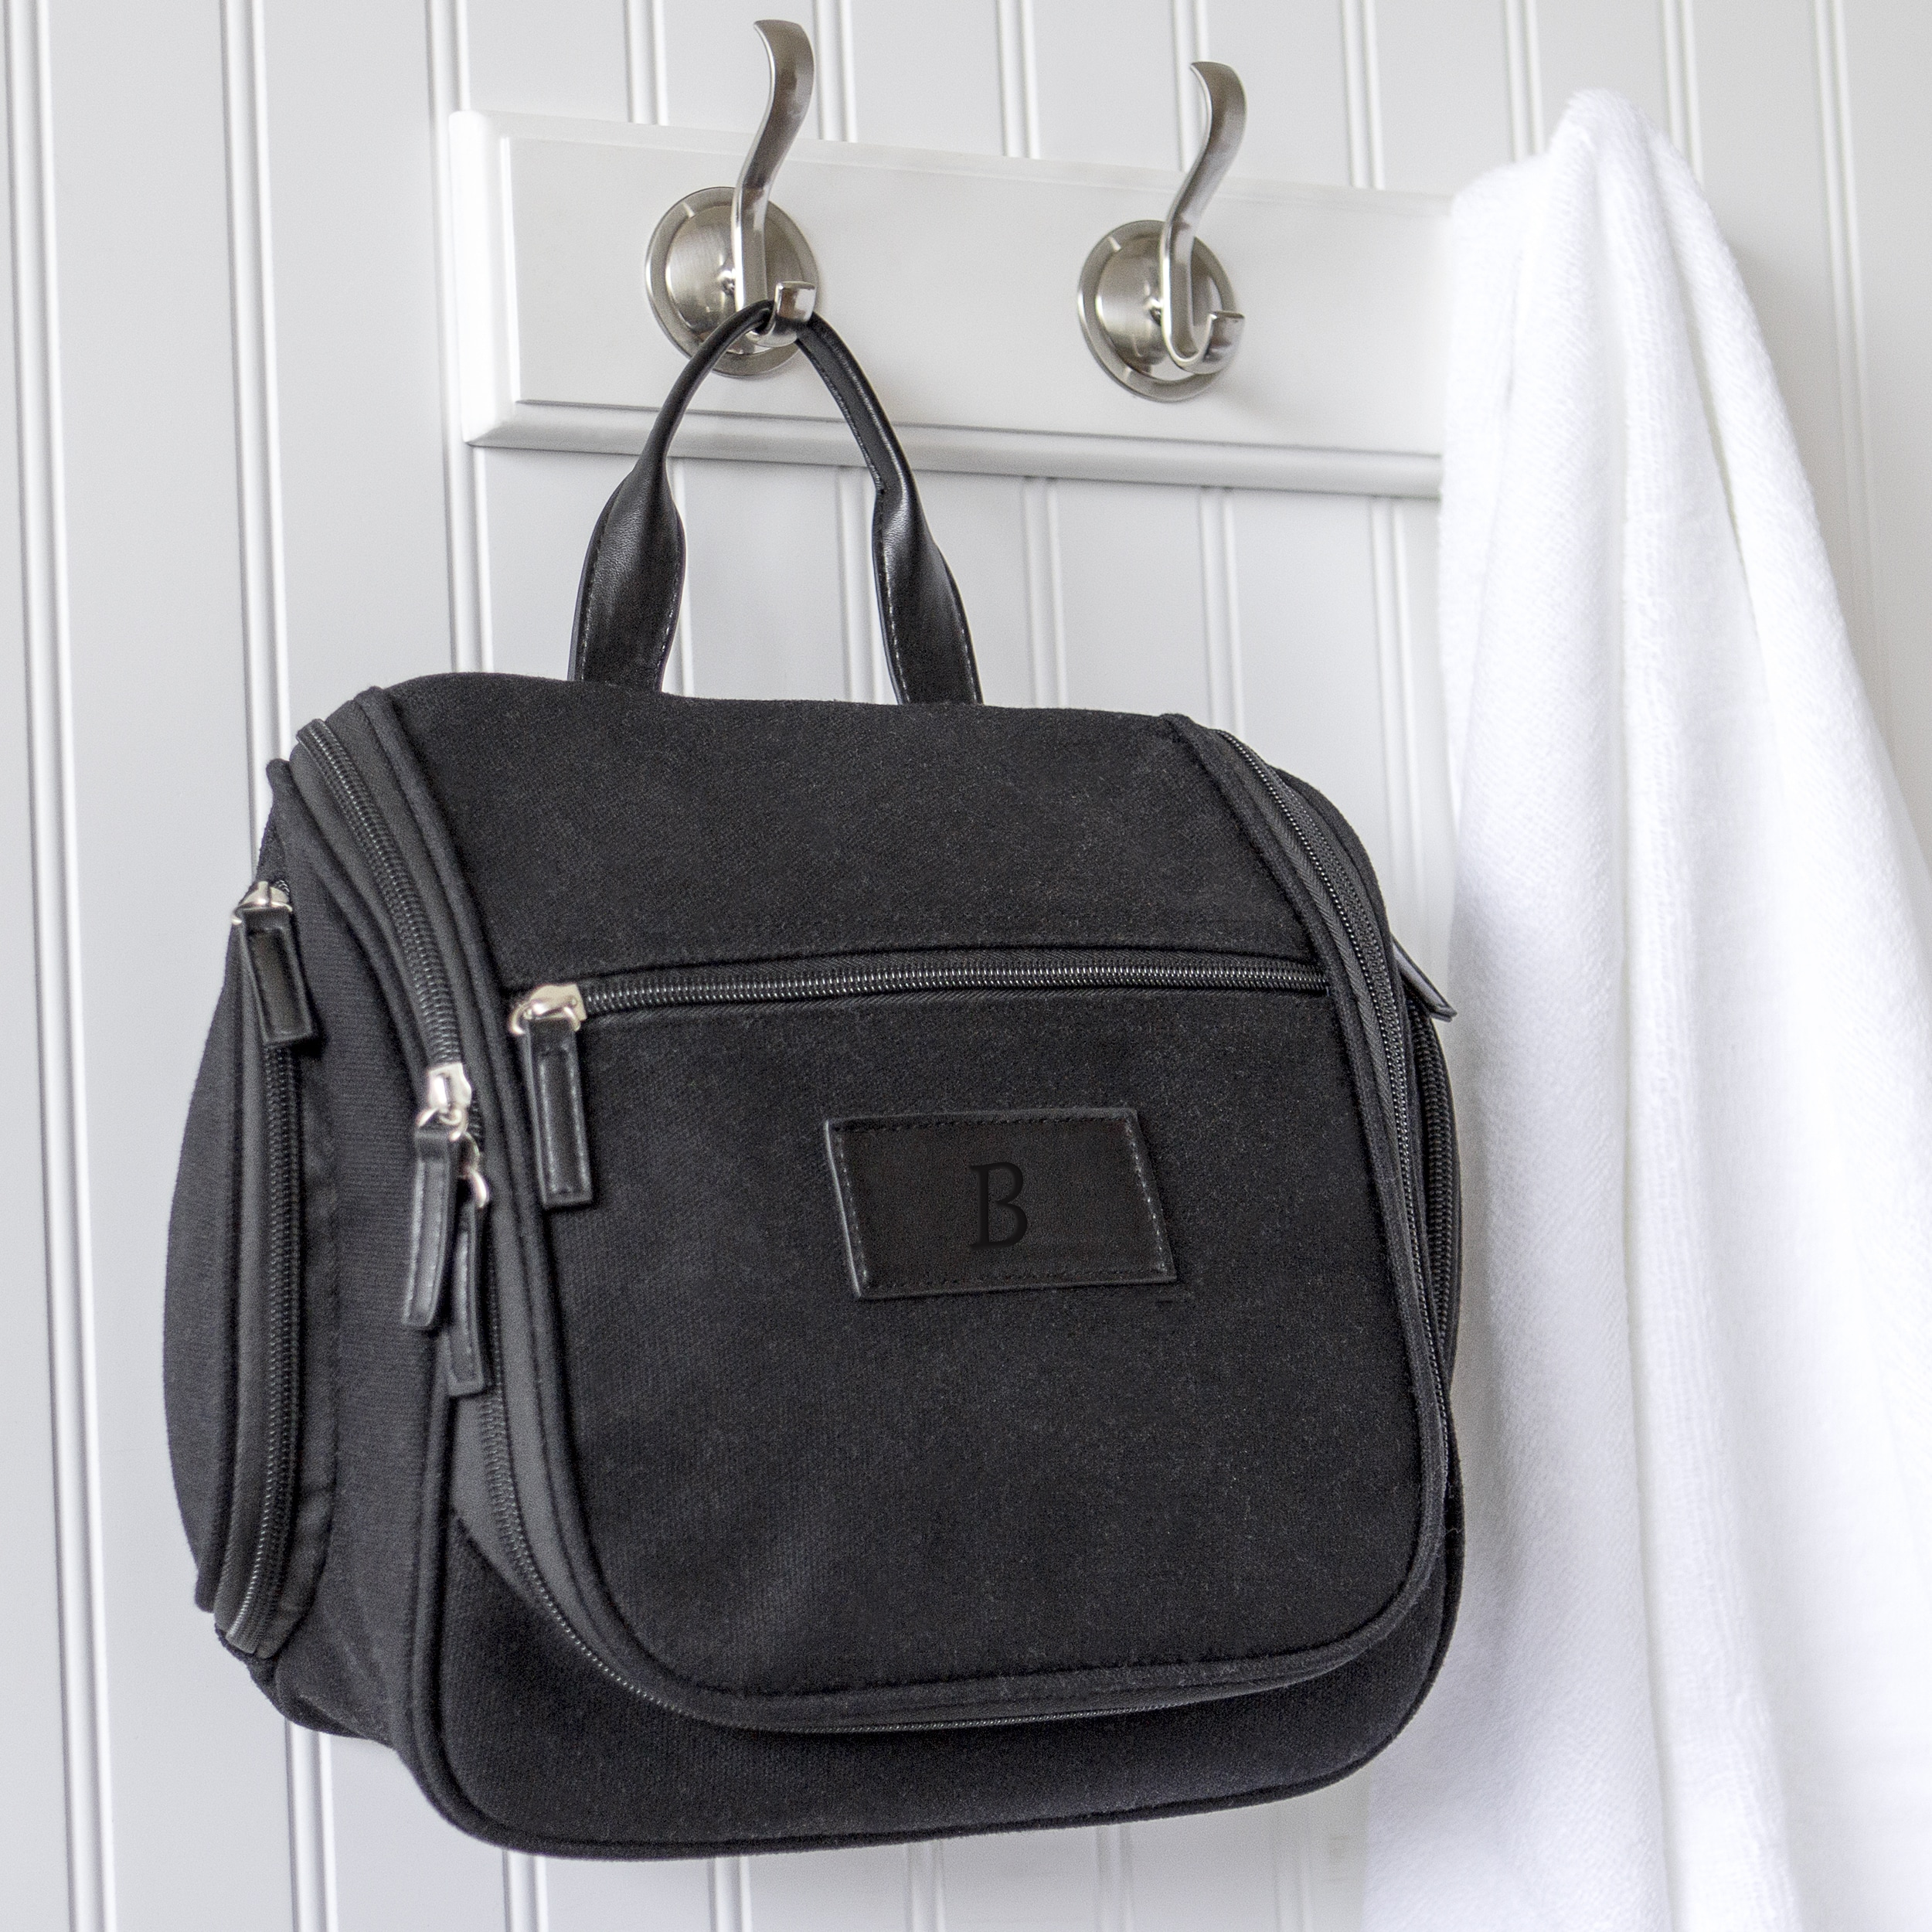 Personalized Men S Waxed Canvas And Leather Hanging Toiletry Bag